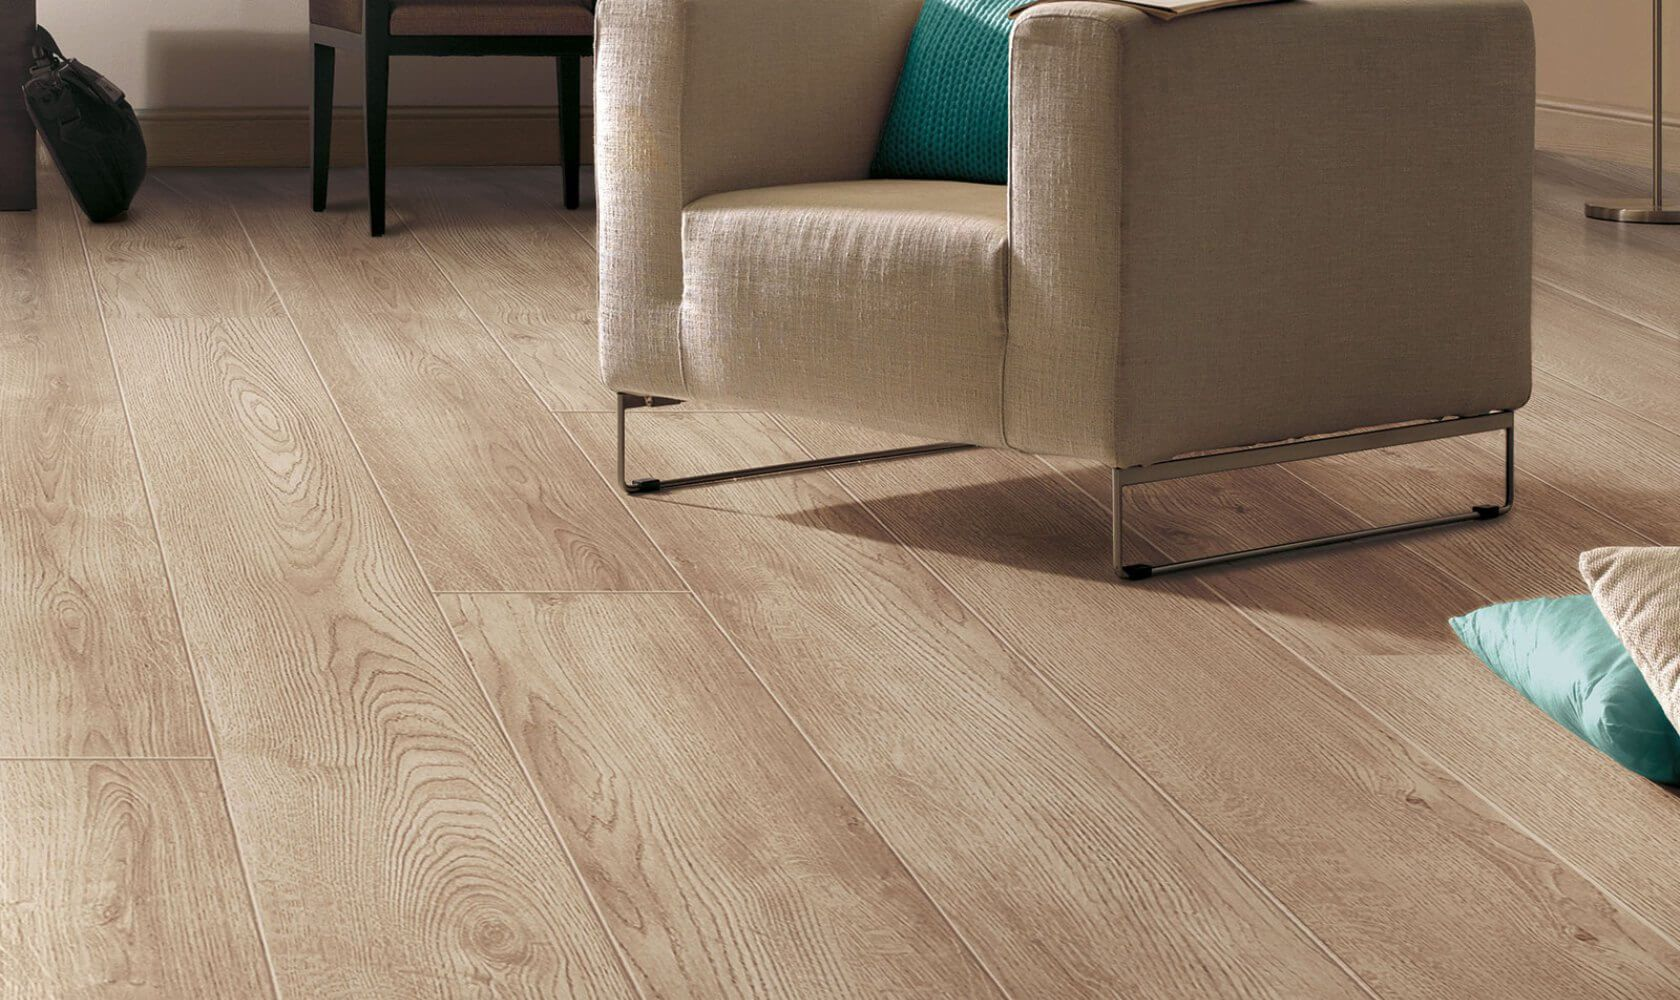 Laminate Floor Finishing Types, Description, Properties. The wooden texture of the material nicely blends with the armchair